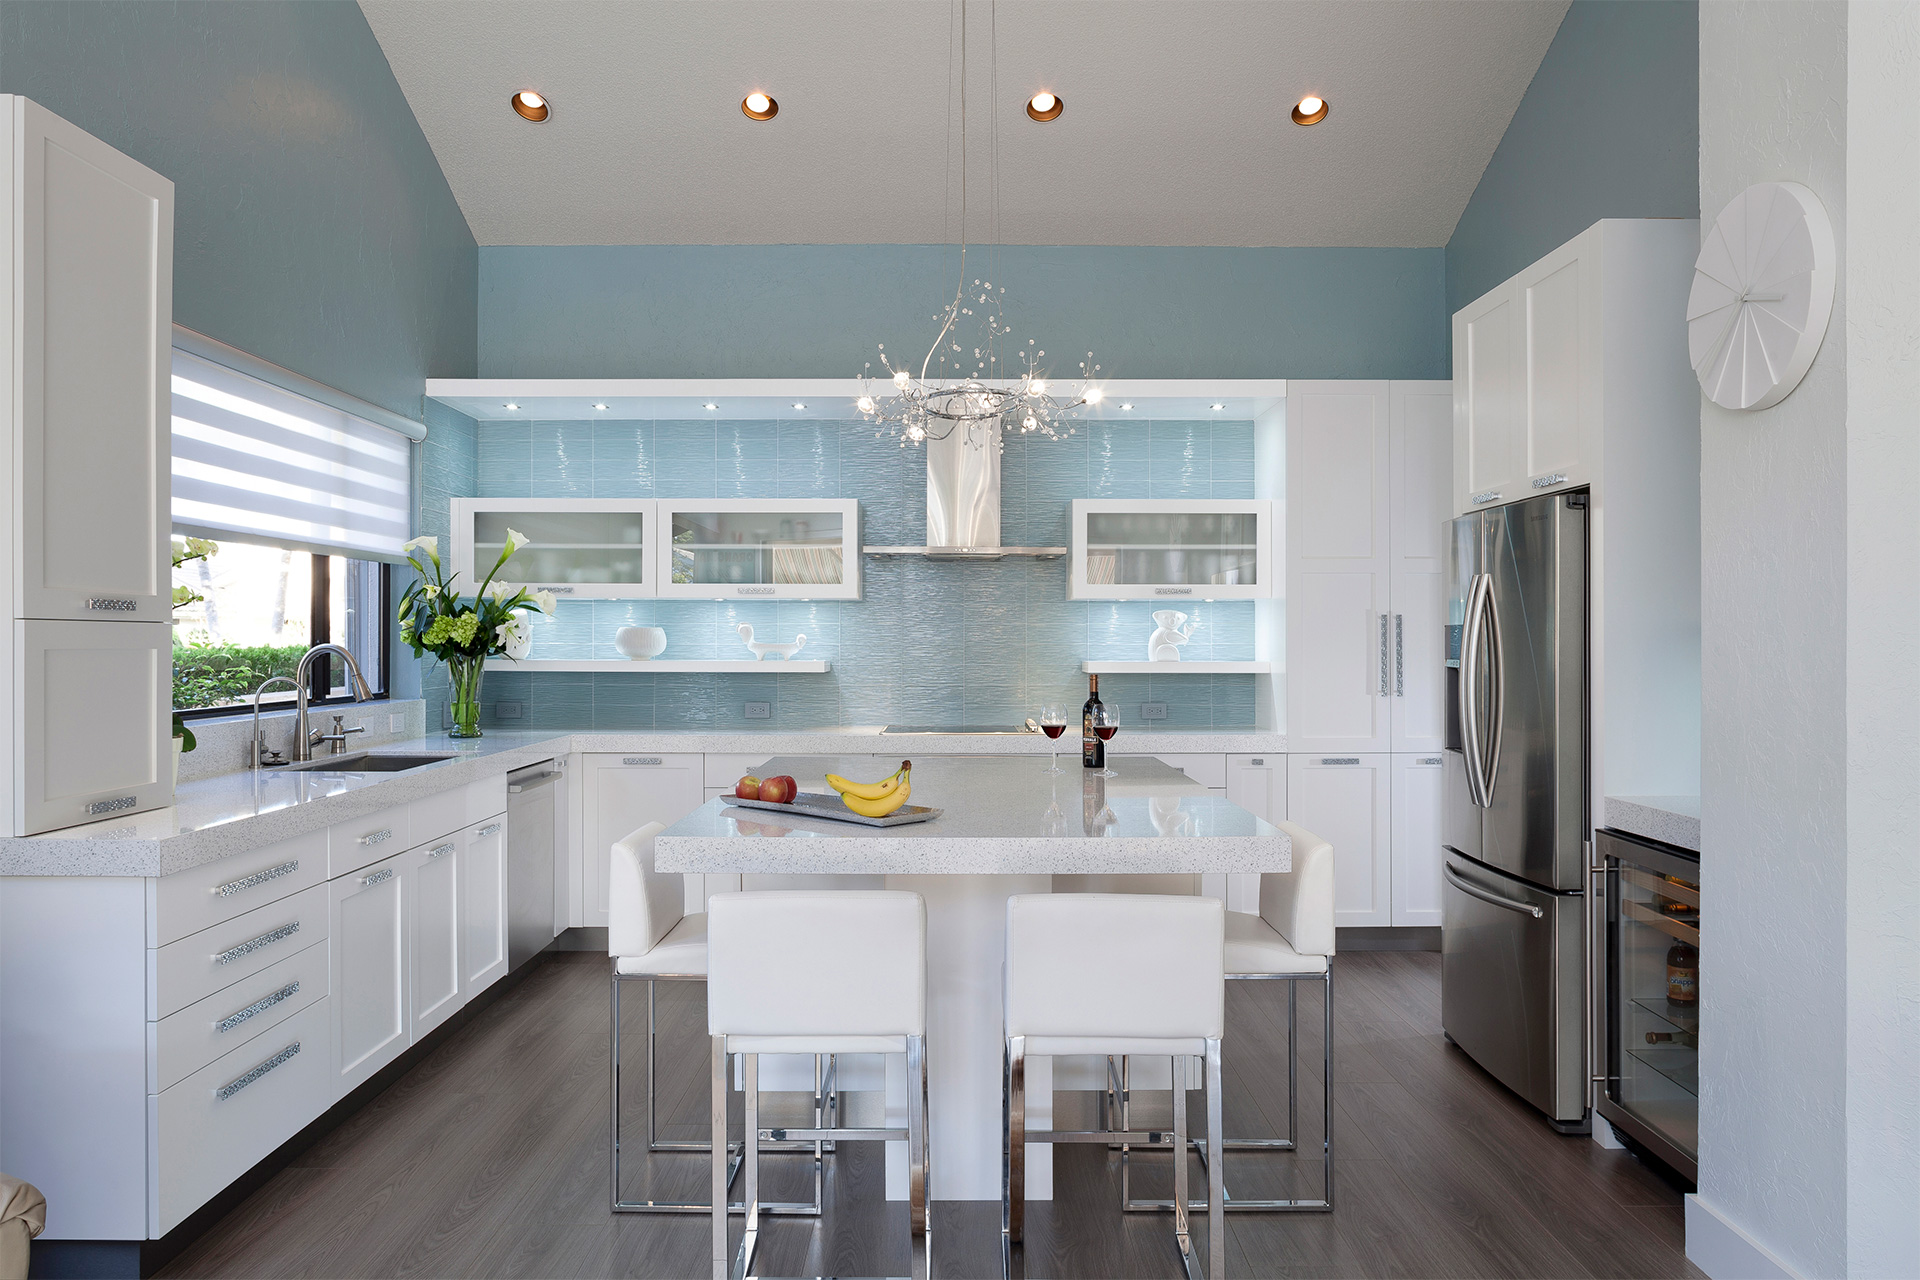 Milano Court | Boca Raton - The Place For Kitchens and Baths